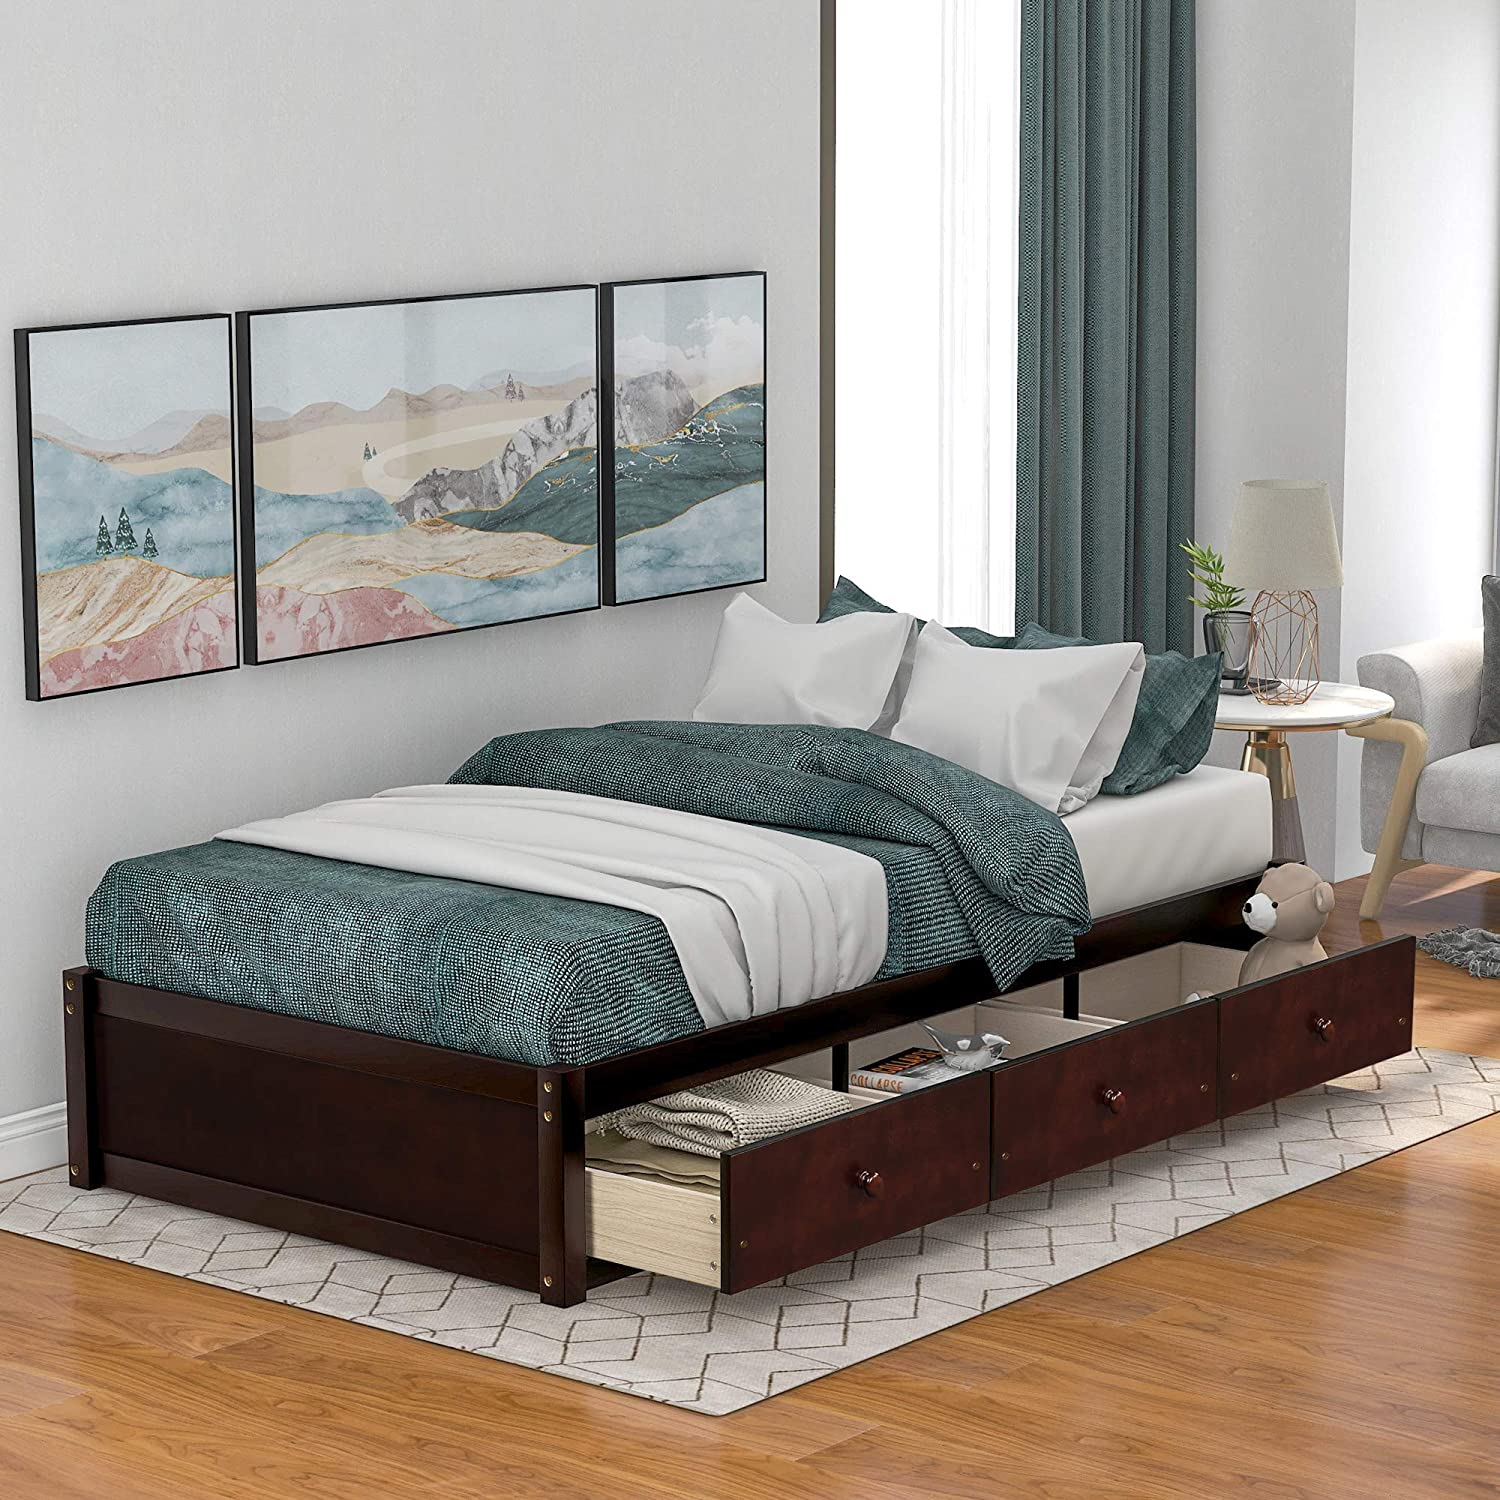 Hooseng Twin Size Platform Bed Frame with Three Drawers, Sturdy Wood Structure, Small Space & No Box Spring Needed, Brown Cherry